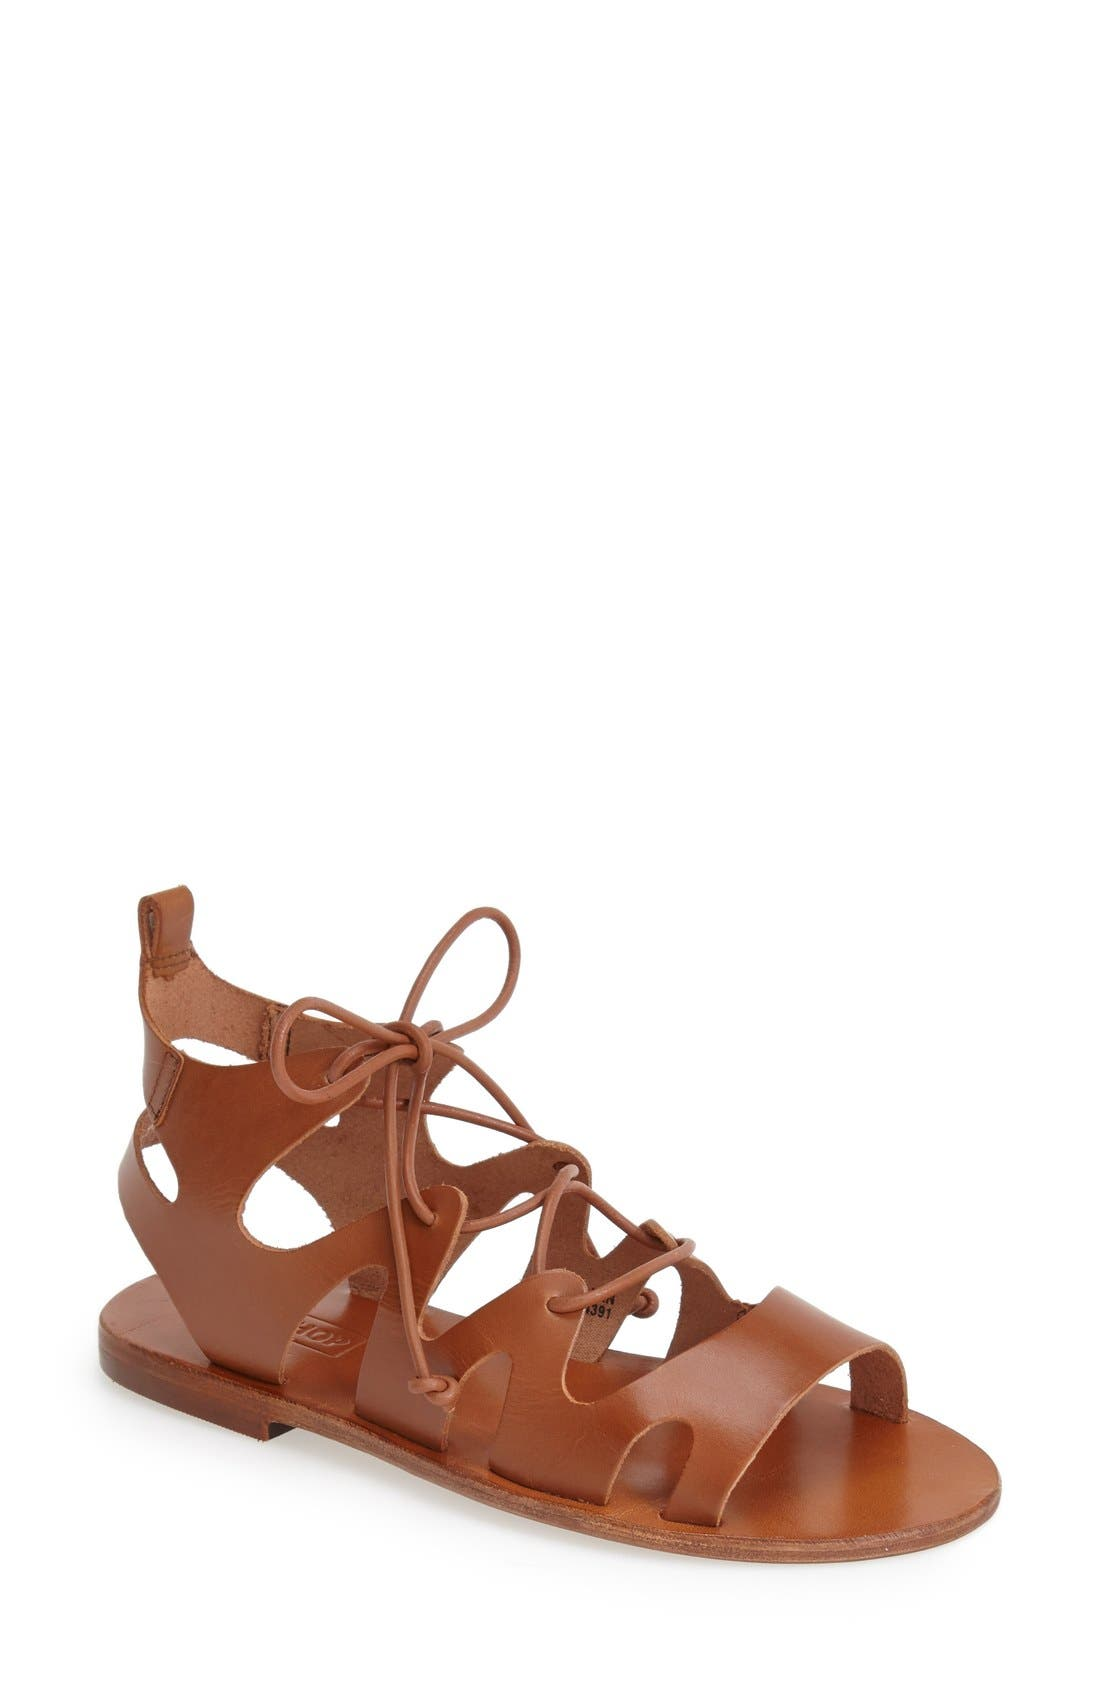 'Fig' Cutout Lace-Up Gladiator Sandal,                         Main,                         color, 210